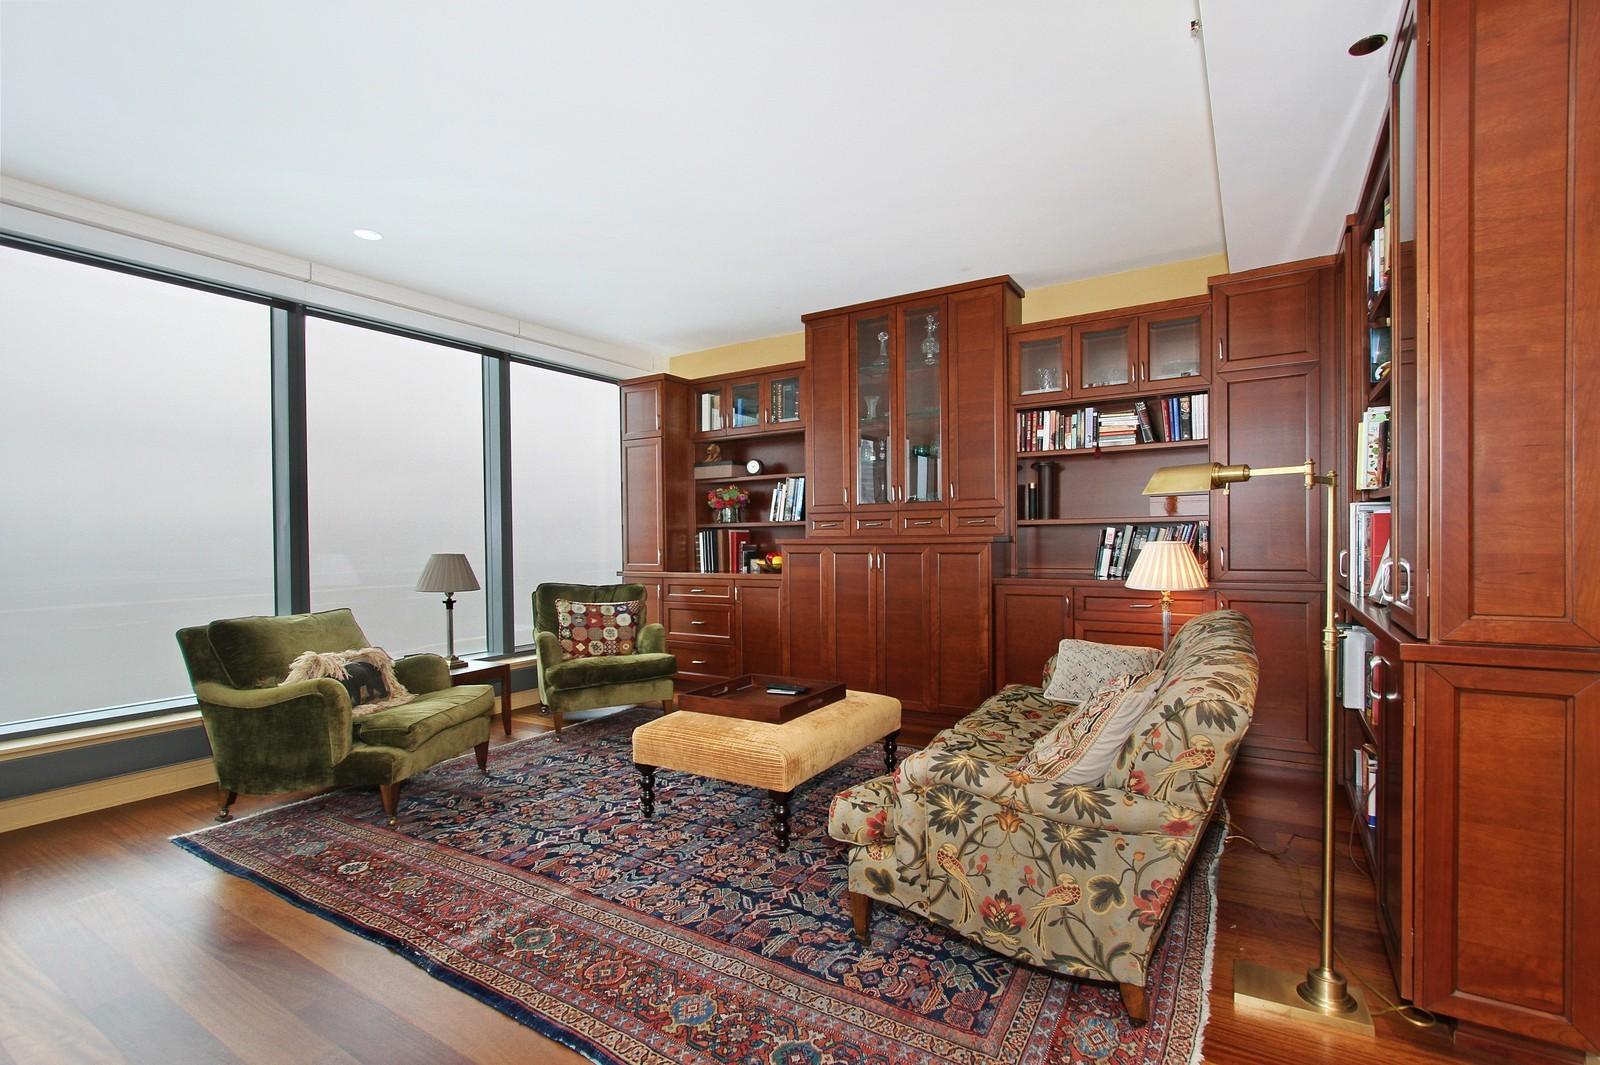 Real Estate Photography - 60 E Monroe, 6501, Chicago, IL, 60603 - Living Room